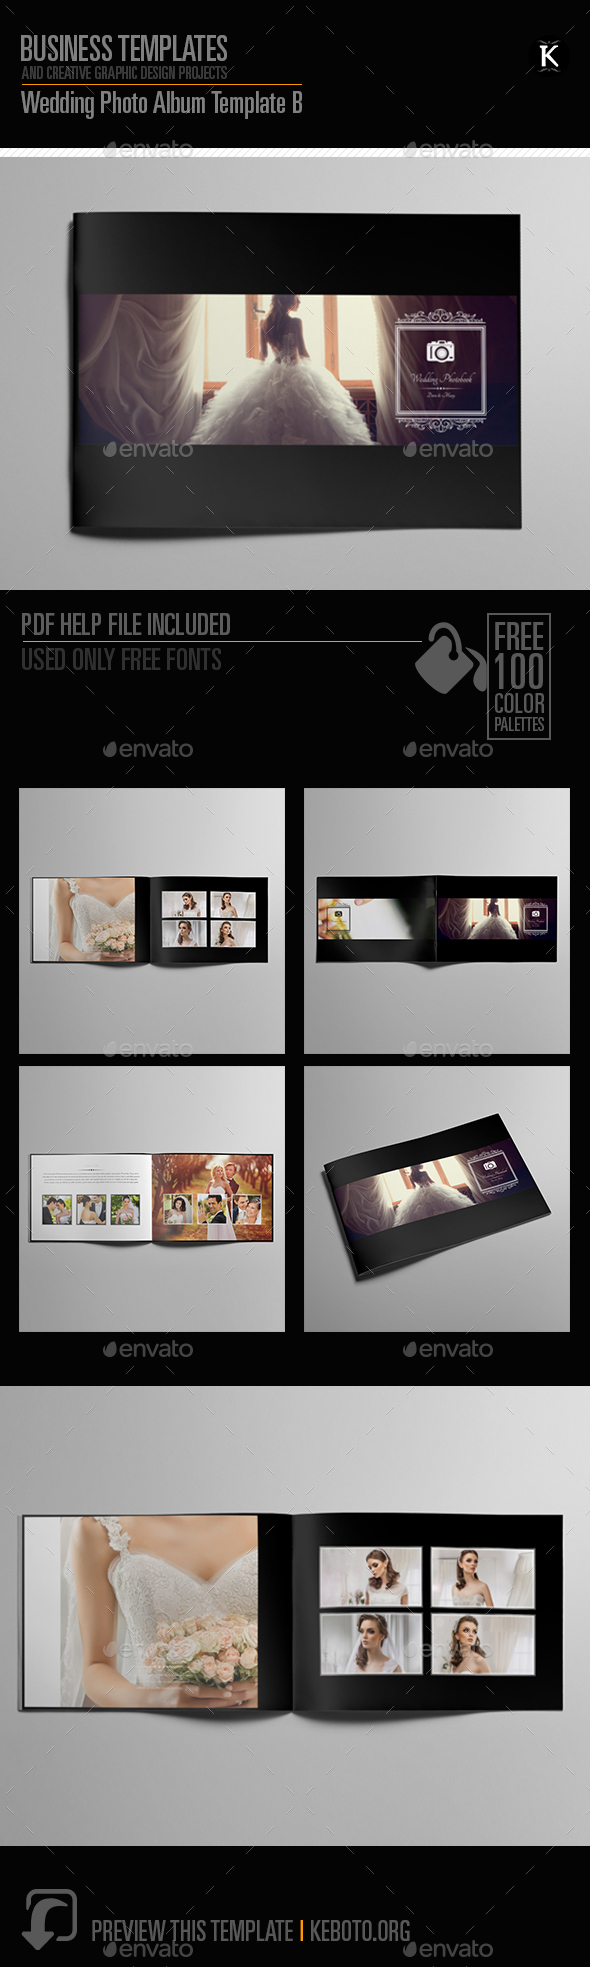 Wedding Photo Album Template B - Photo Albums Print Templates